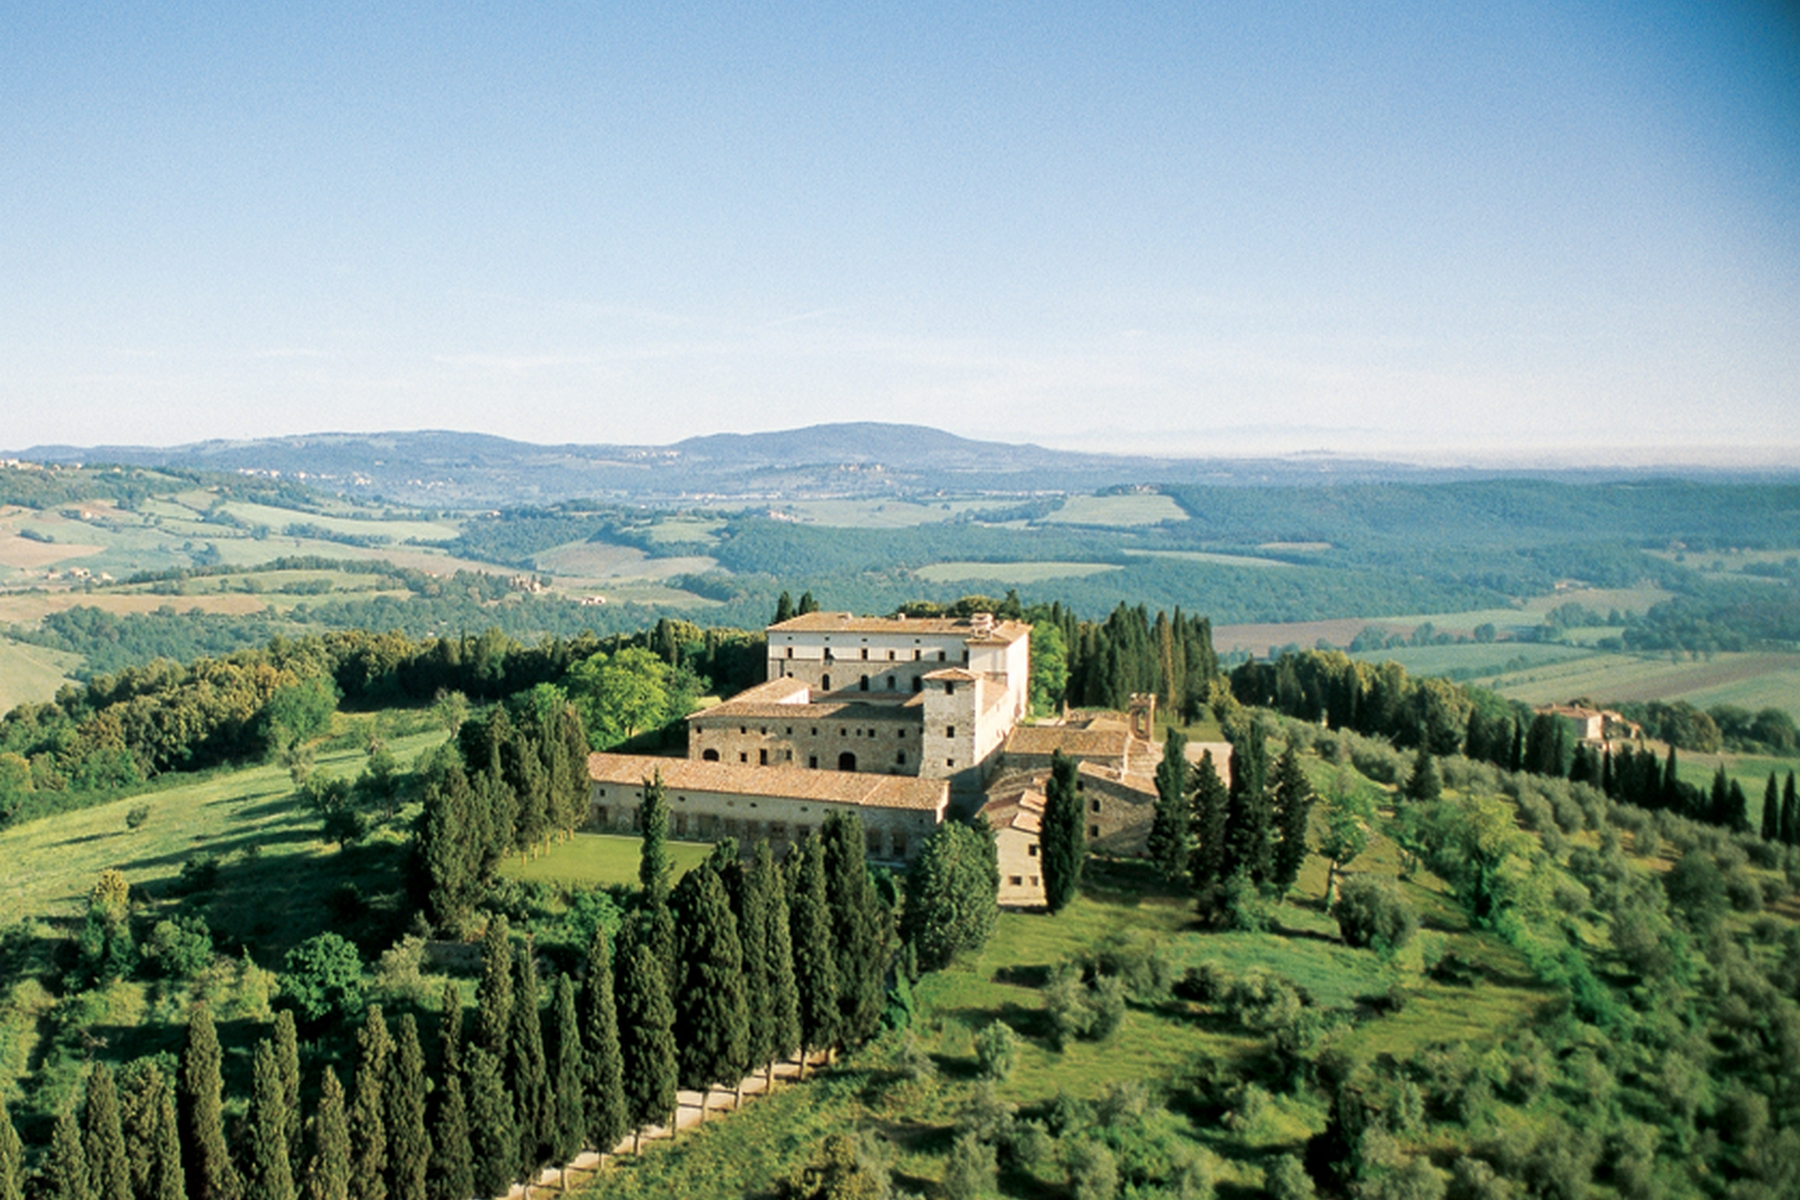 Single Family Home for Sale at Tuscany luxury lifestyle homes Siena Other Siena, Siena, 53031 Italy